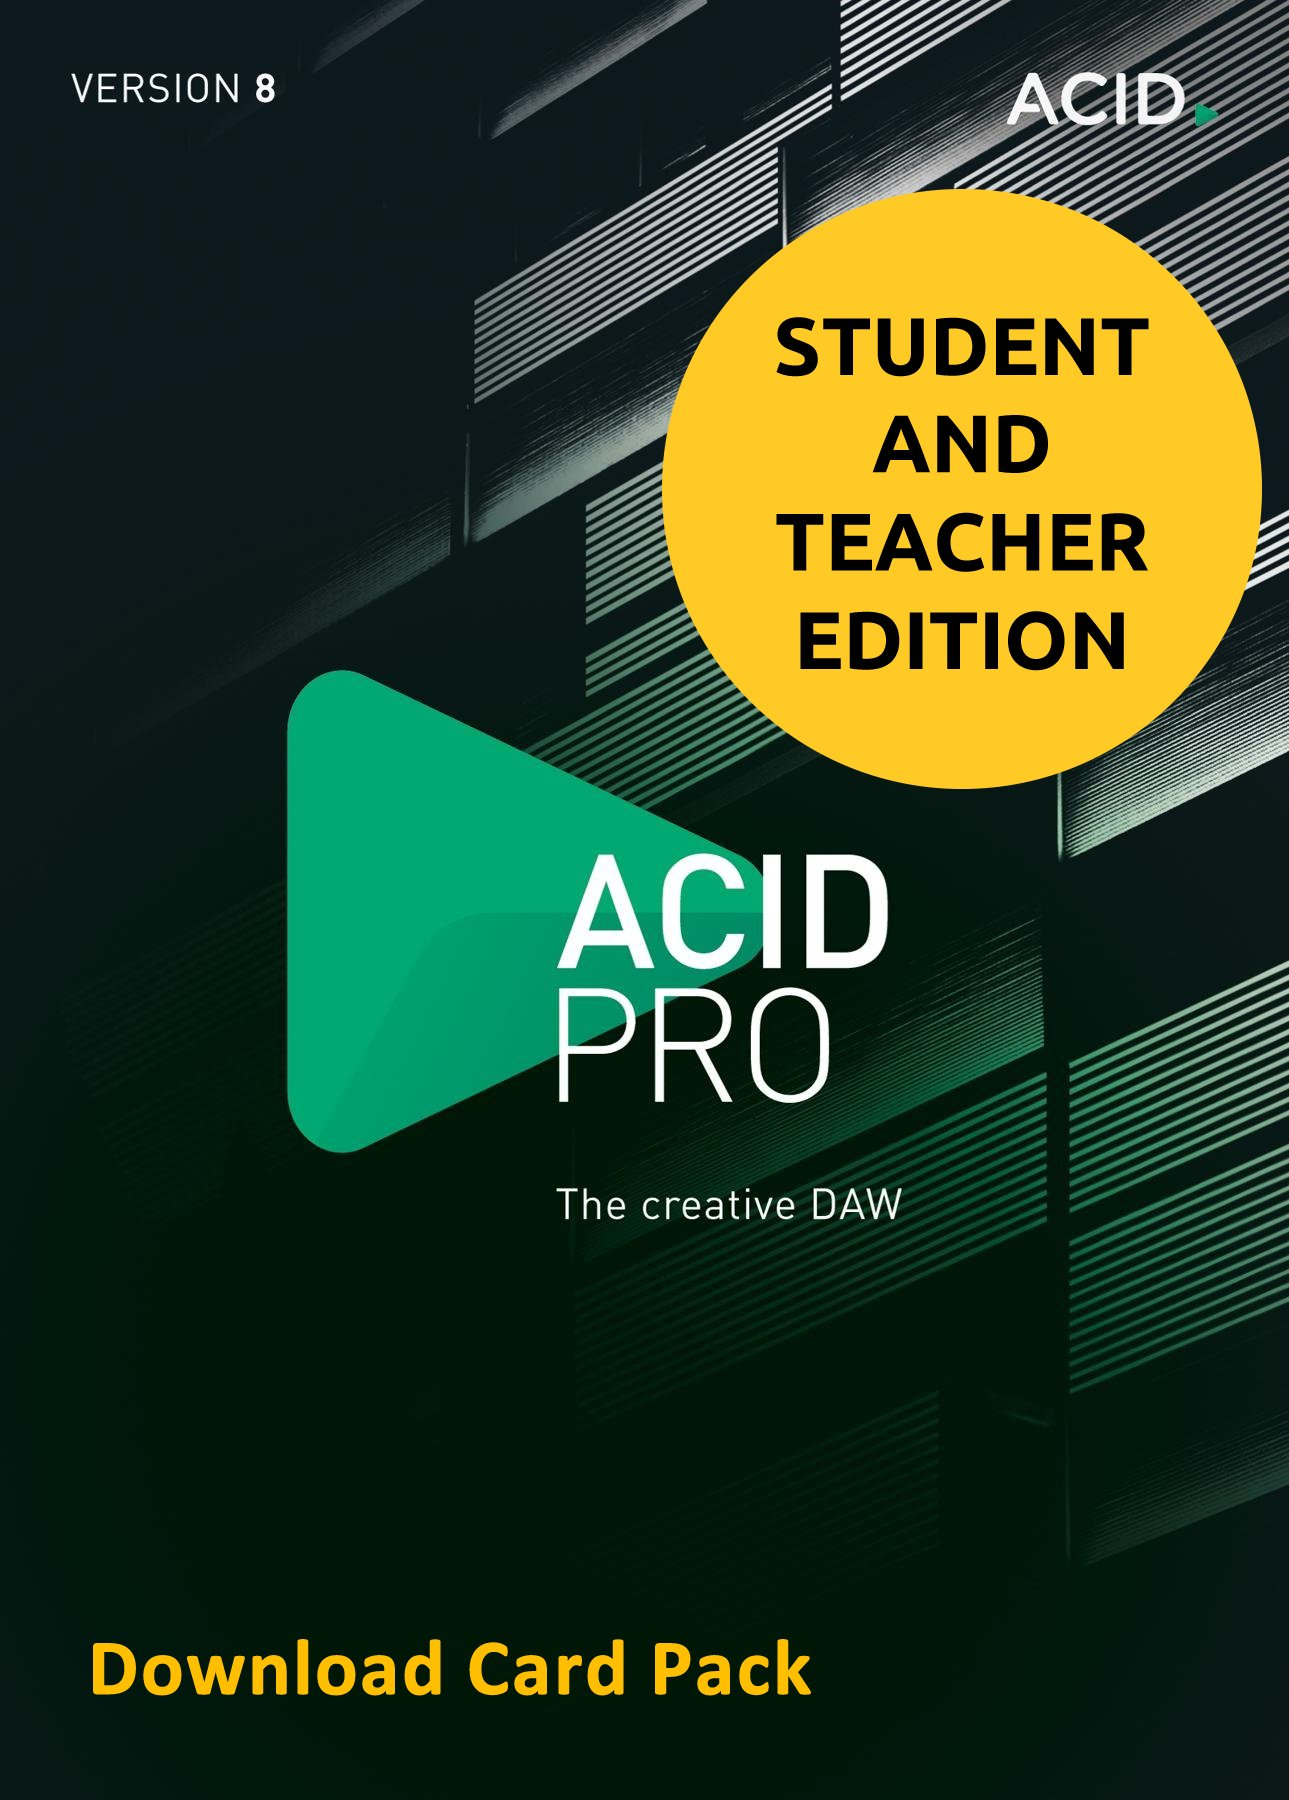 MAGIX Acid Pro 8 for Students & Teachers (Download Card) by Genesis MGX